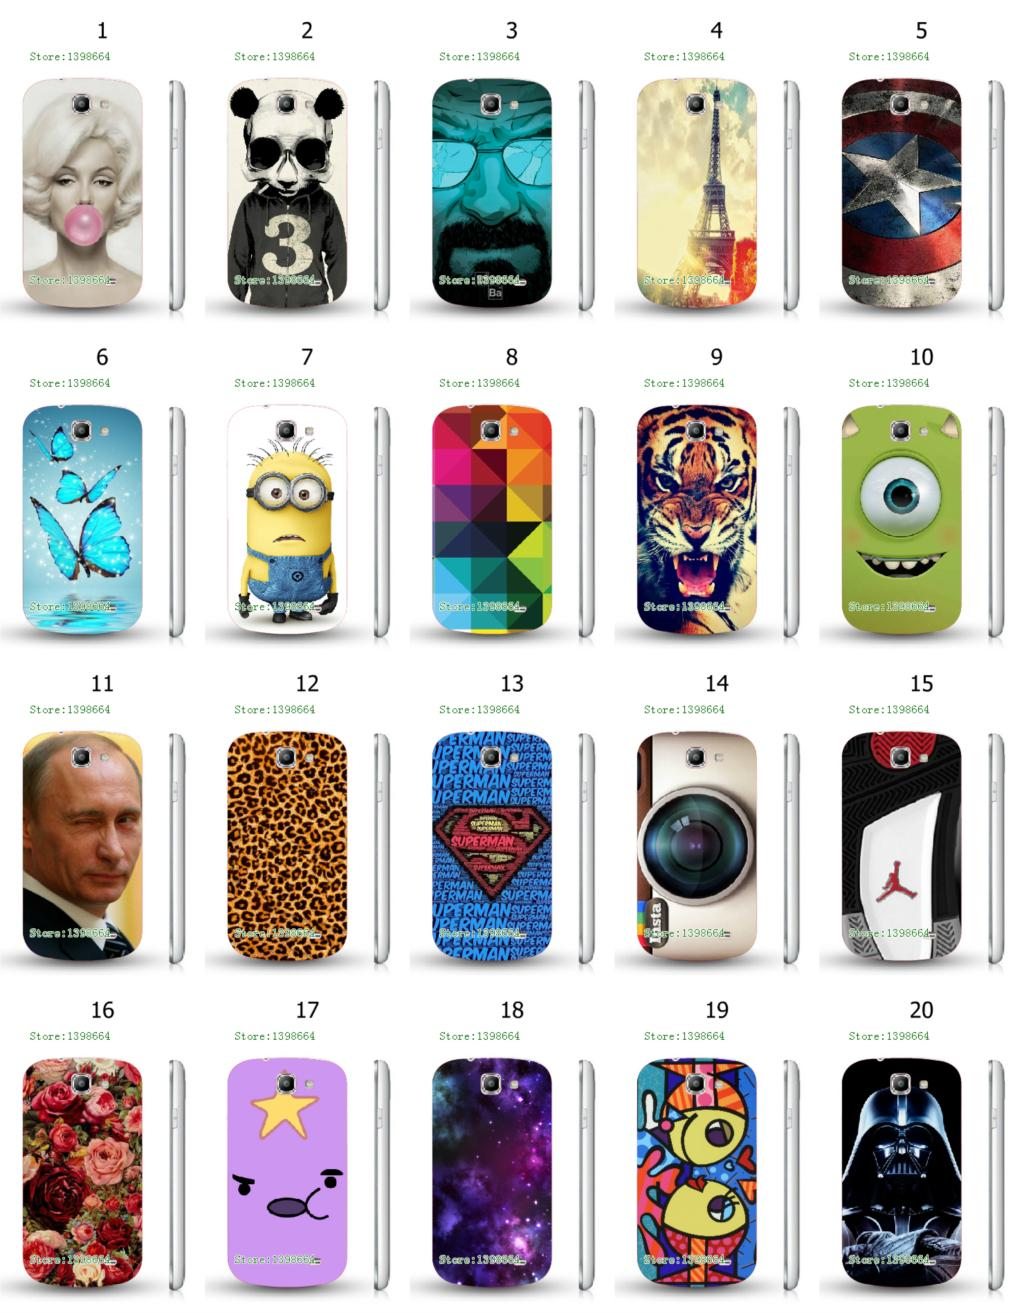 Mobile Phone Cases Hot 1pc Star Wars Hybrid Design Protective White Hard Case For Samsung galaxy express i8730 Free Shipping(China (Mainland))